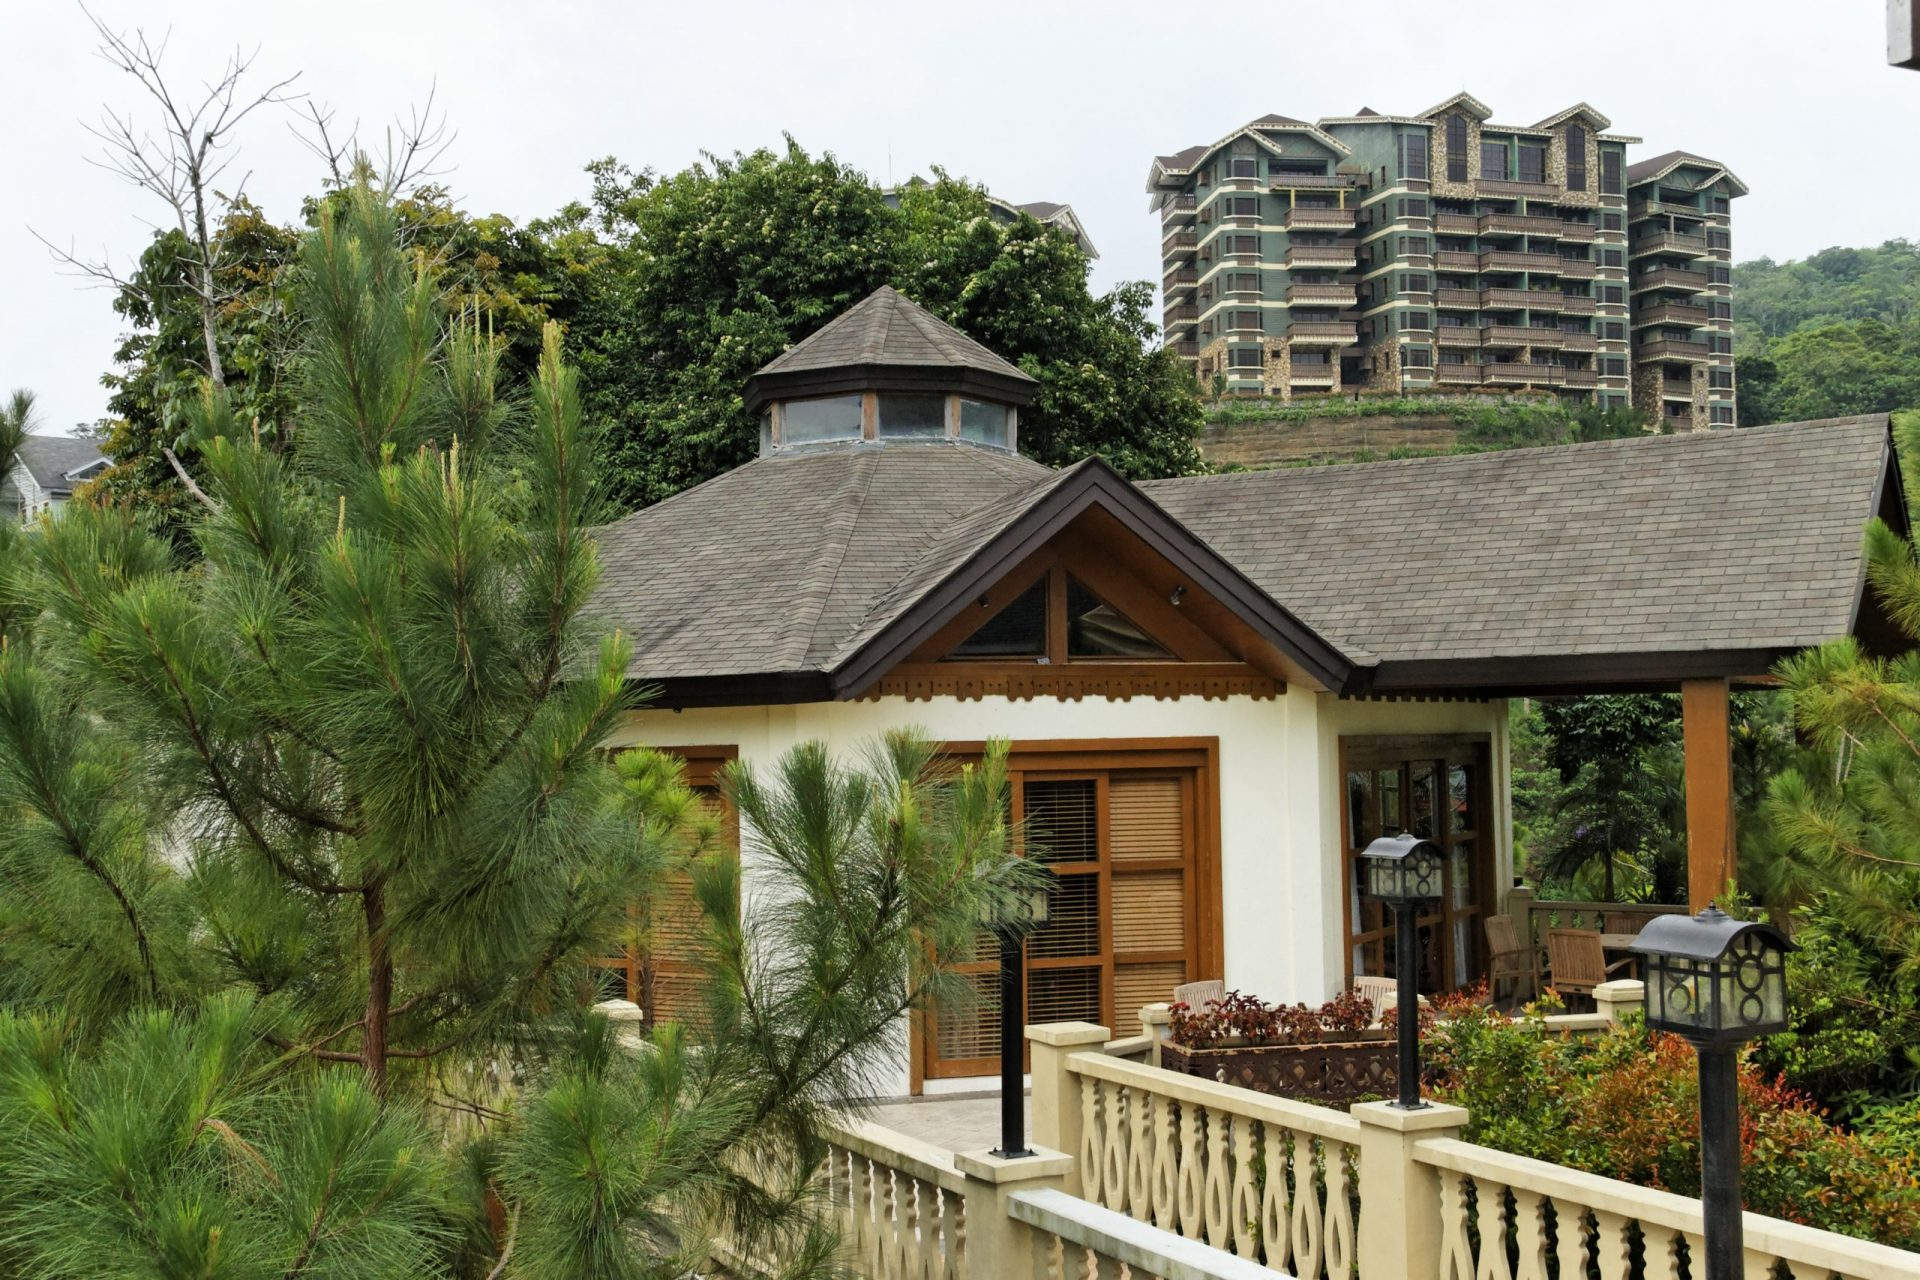 Brittany's Swiss-inspired Community in Tagaytay